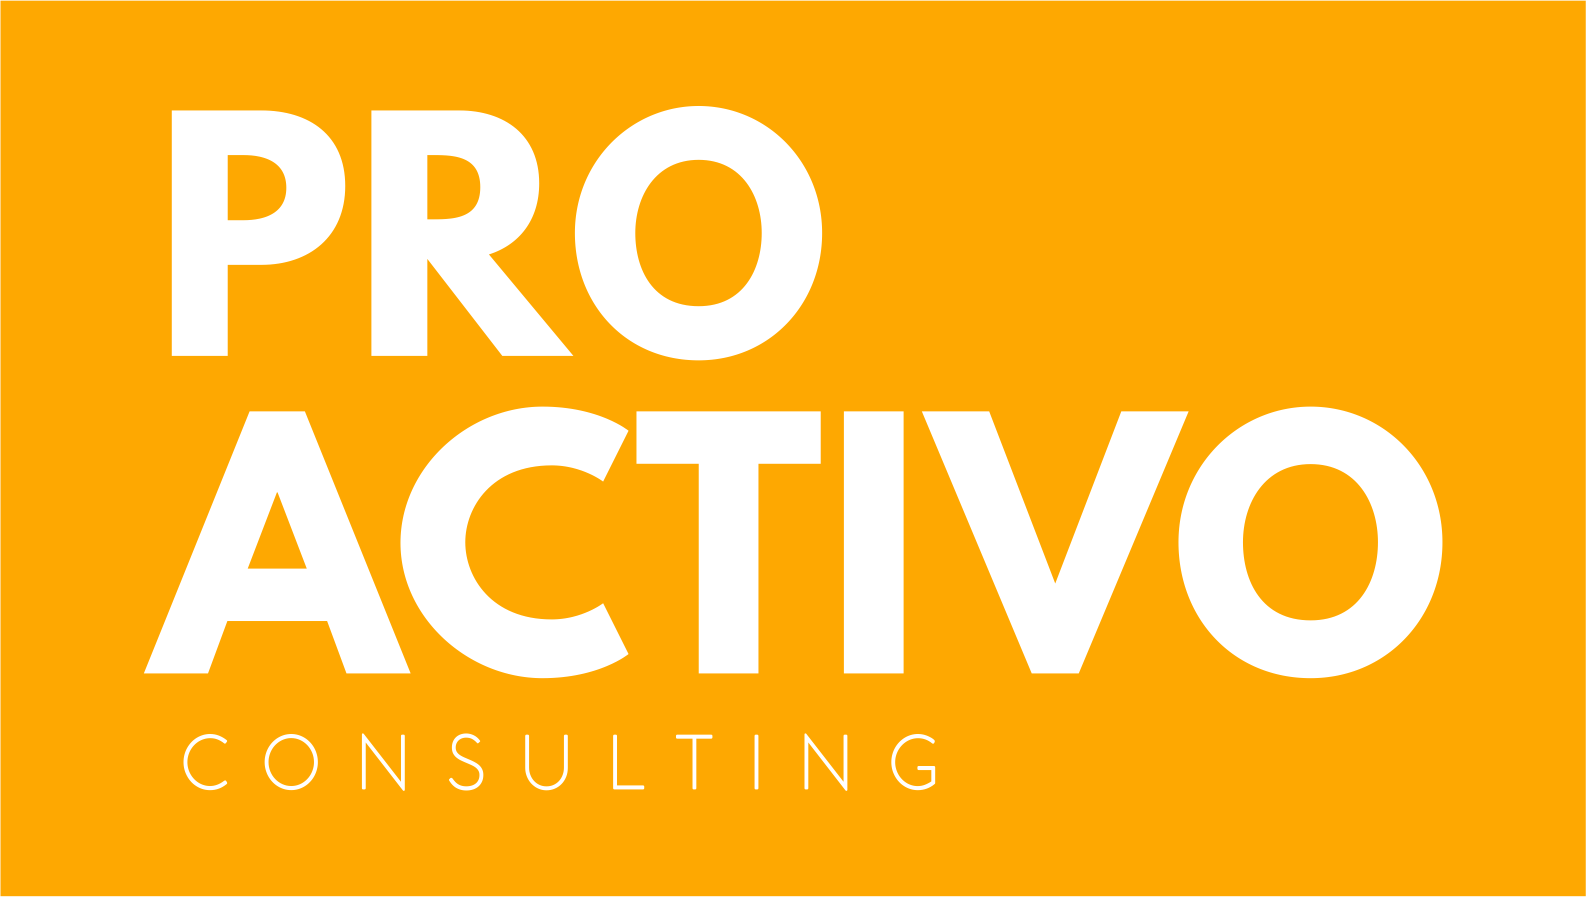 Proactivo Consulting